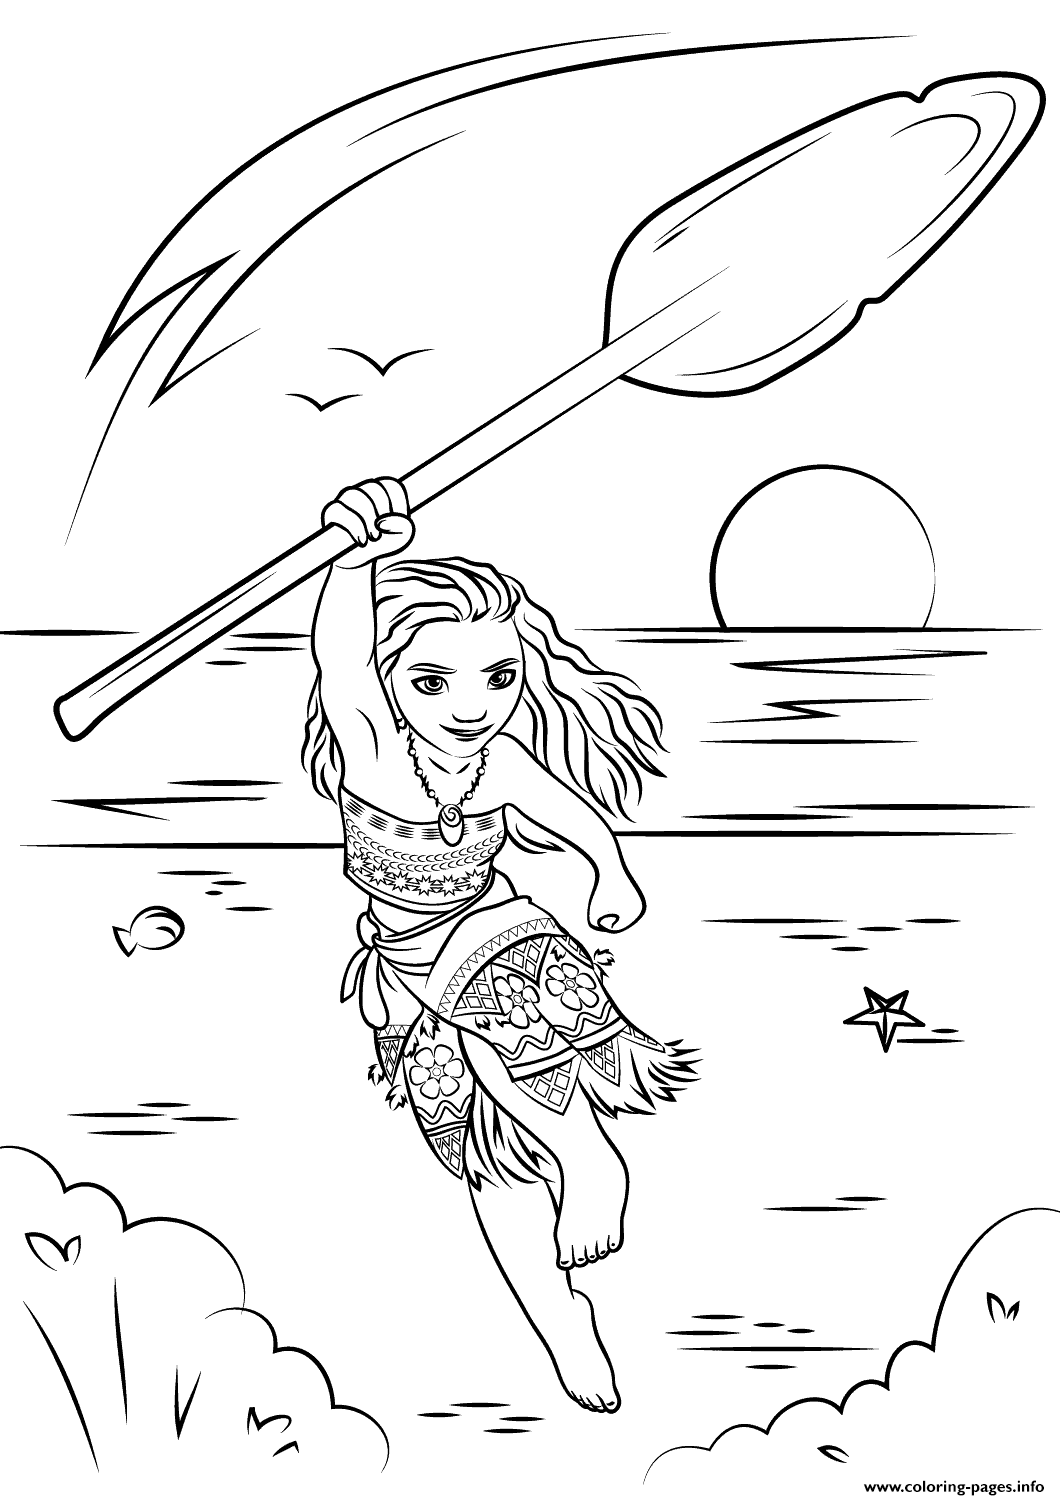 Moana Disney Coloring Pages Print Download 364 Prints